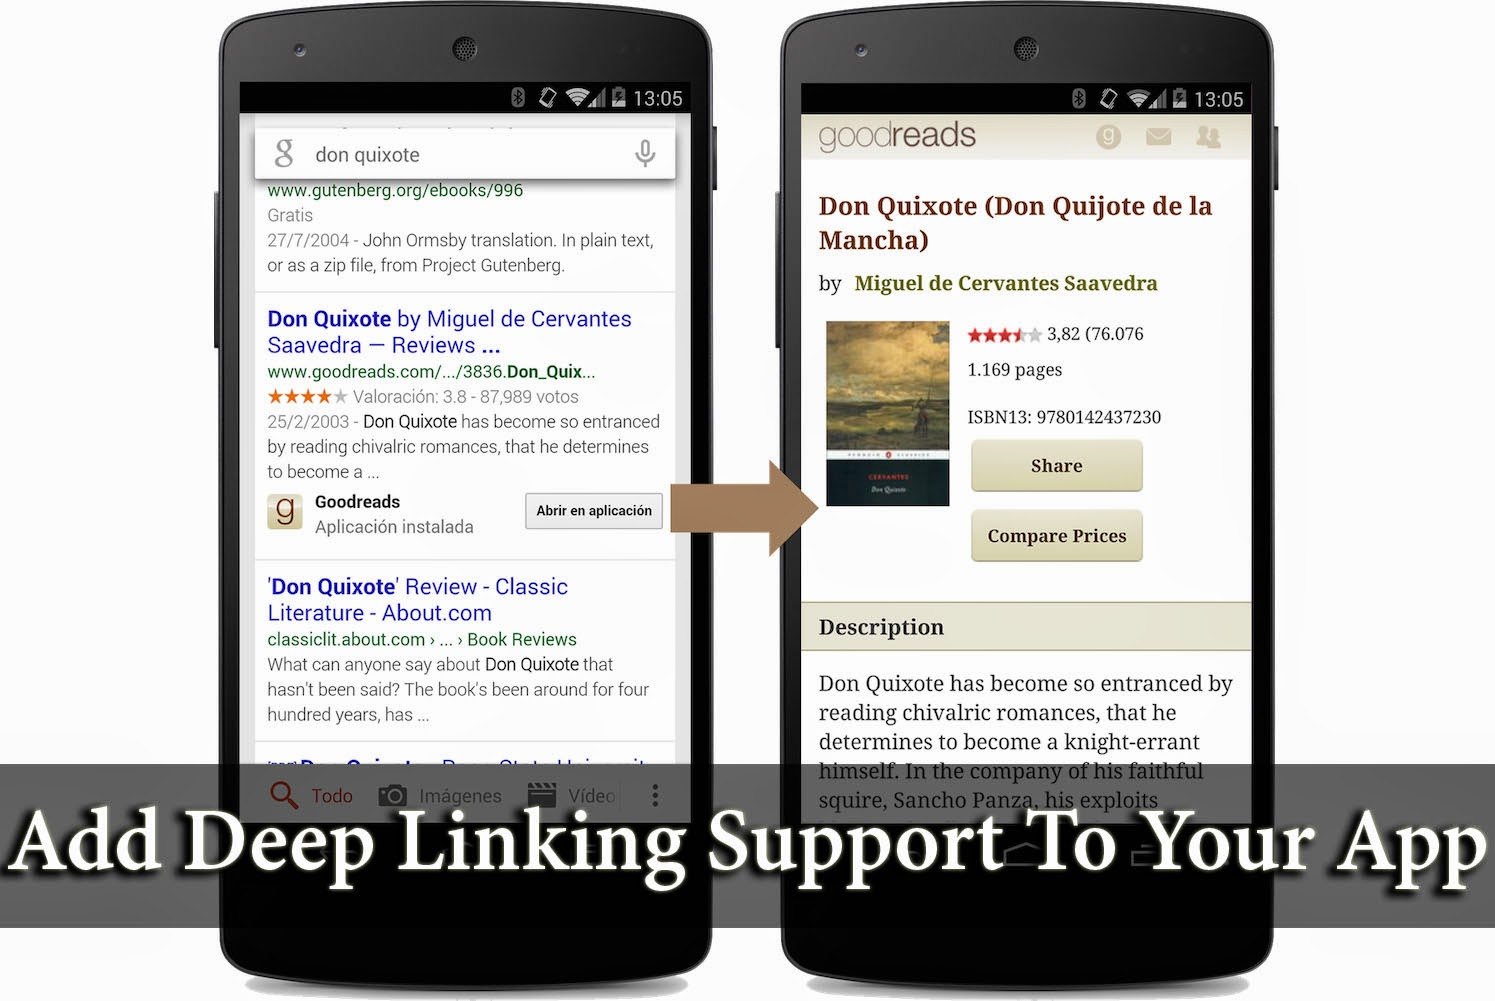 Add deep linking support to your app